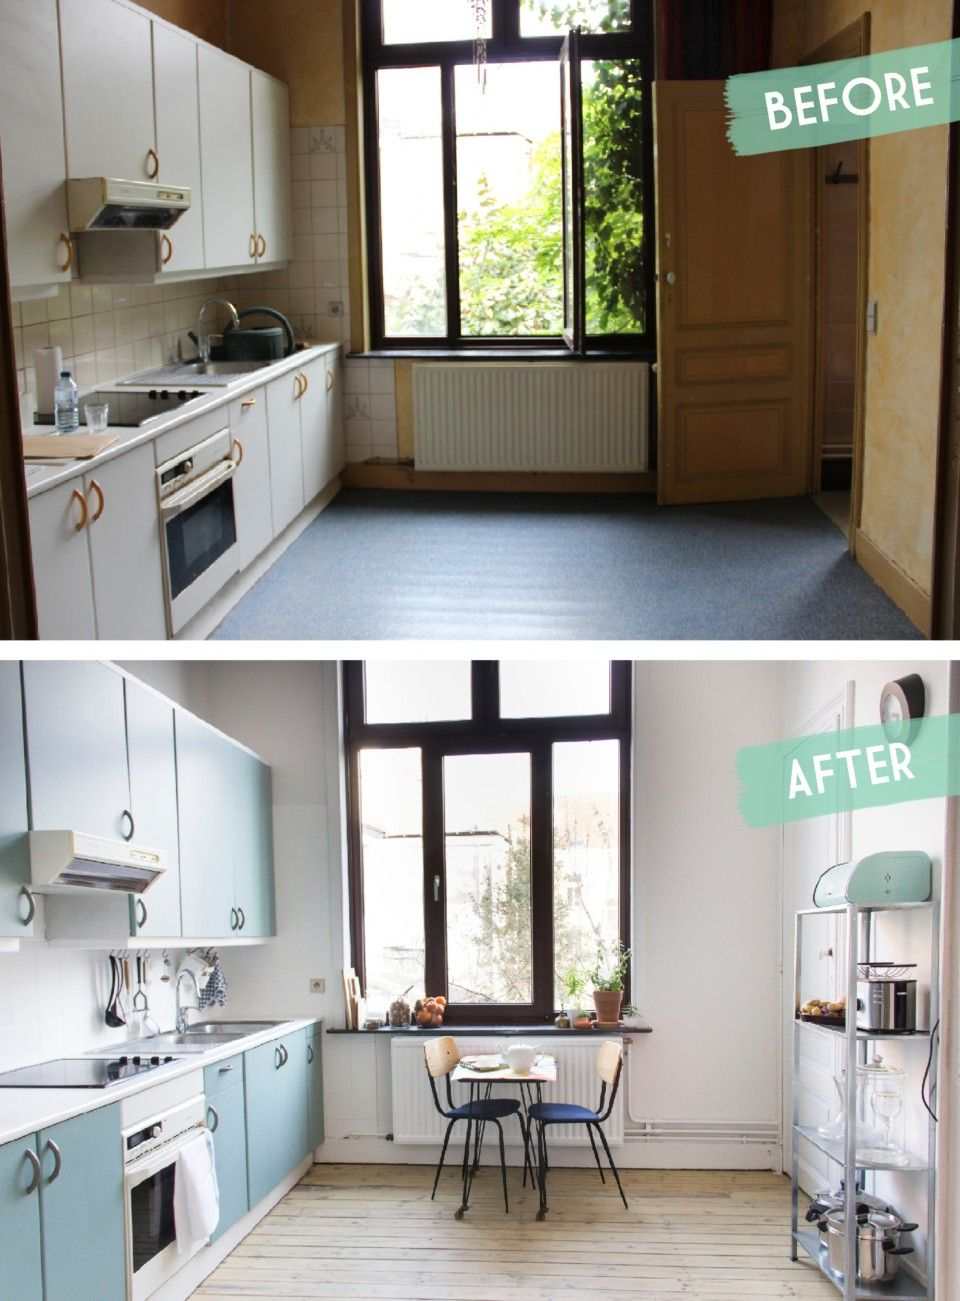 Kitchen makeover before after une cuisine avant après sur www augusteetclaire